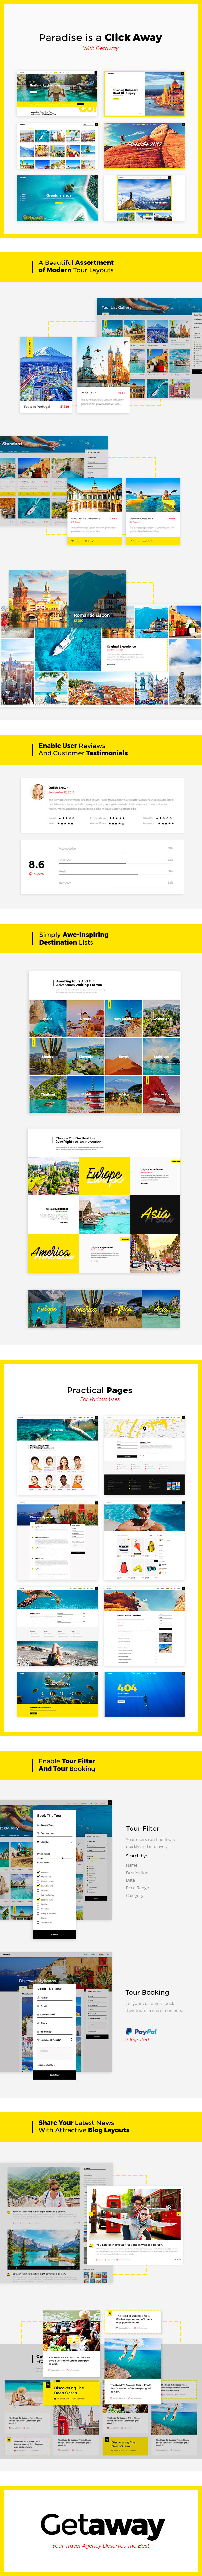 Getaway - An Upbeat Travel and Tourism Theme (Travel)